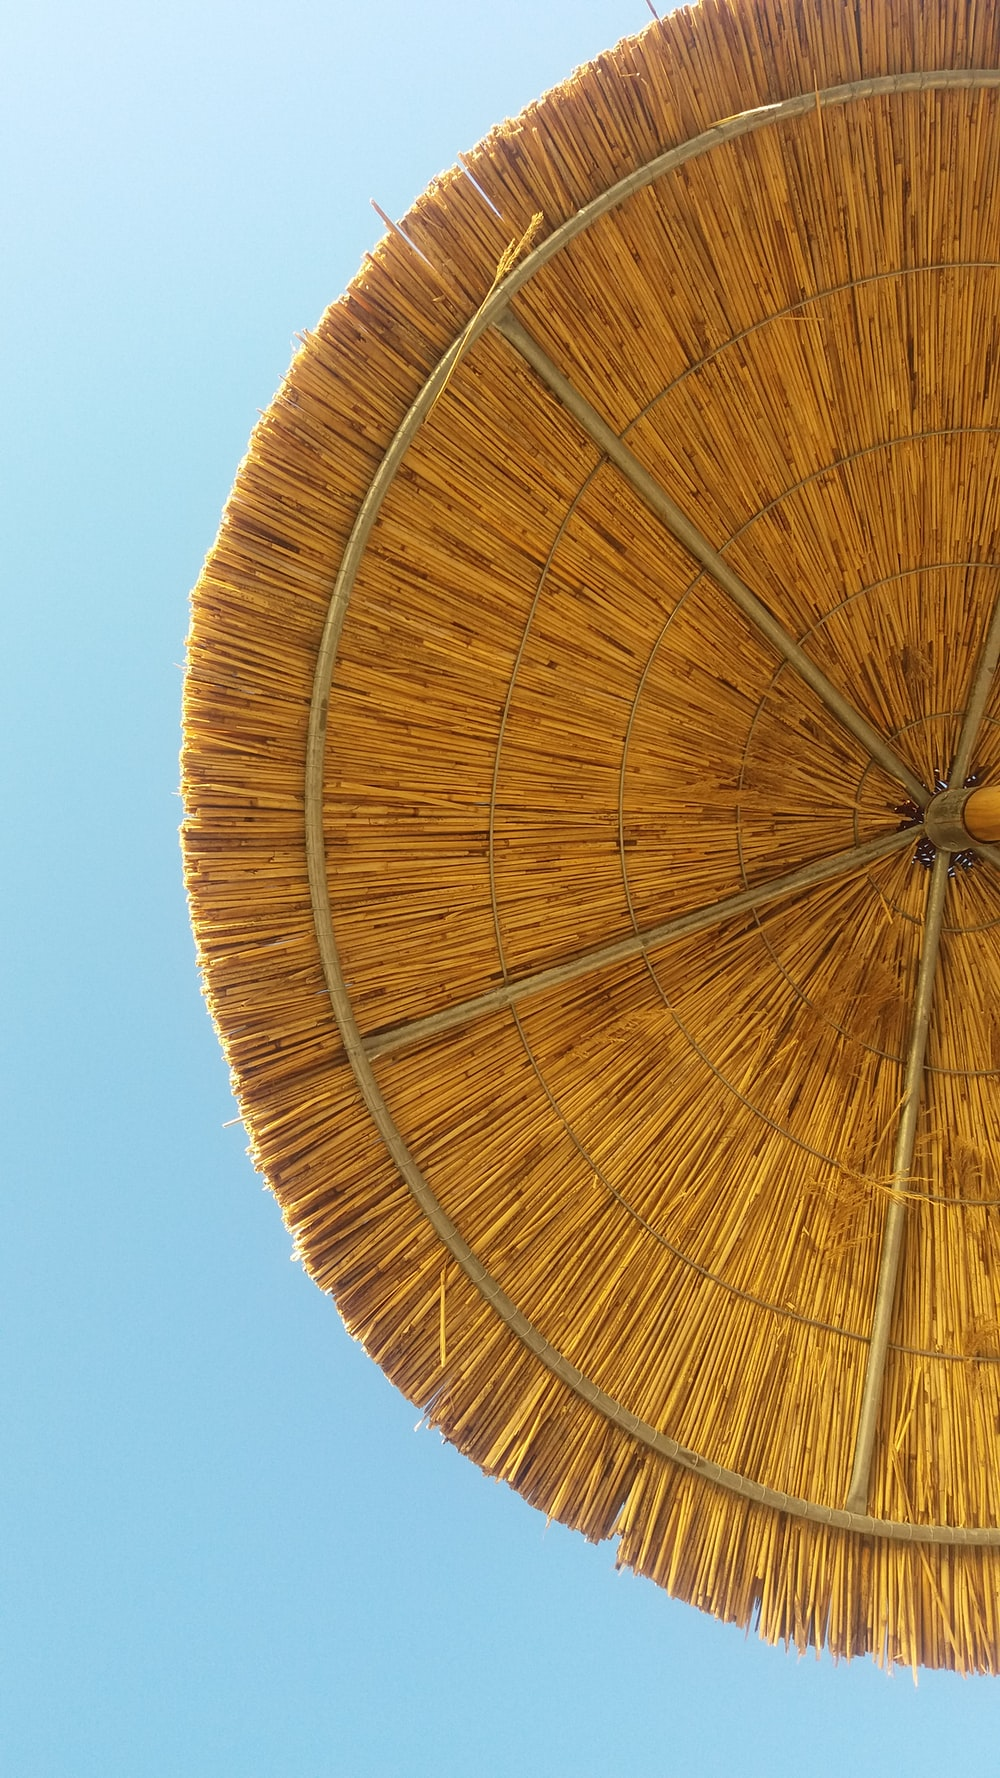 worm's-eye view photography of beige parasol